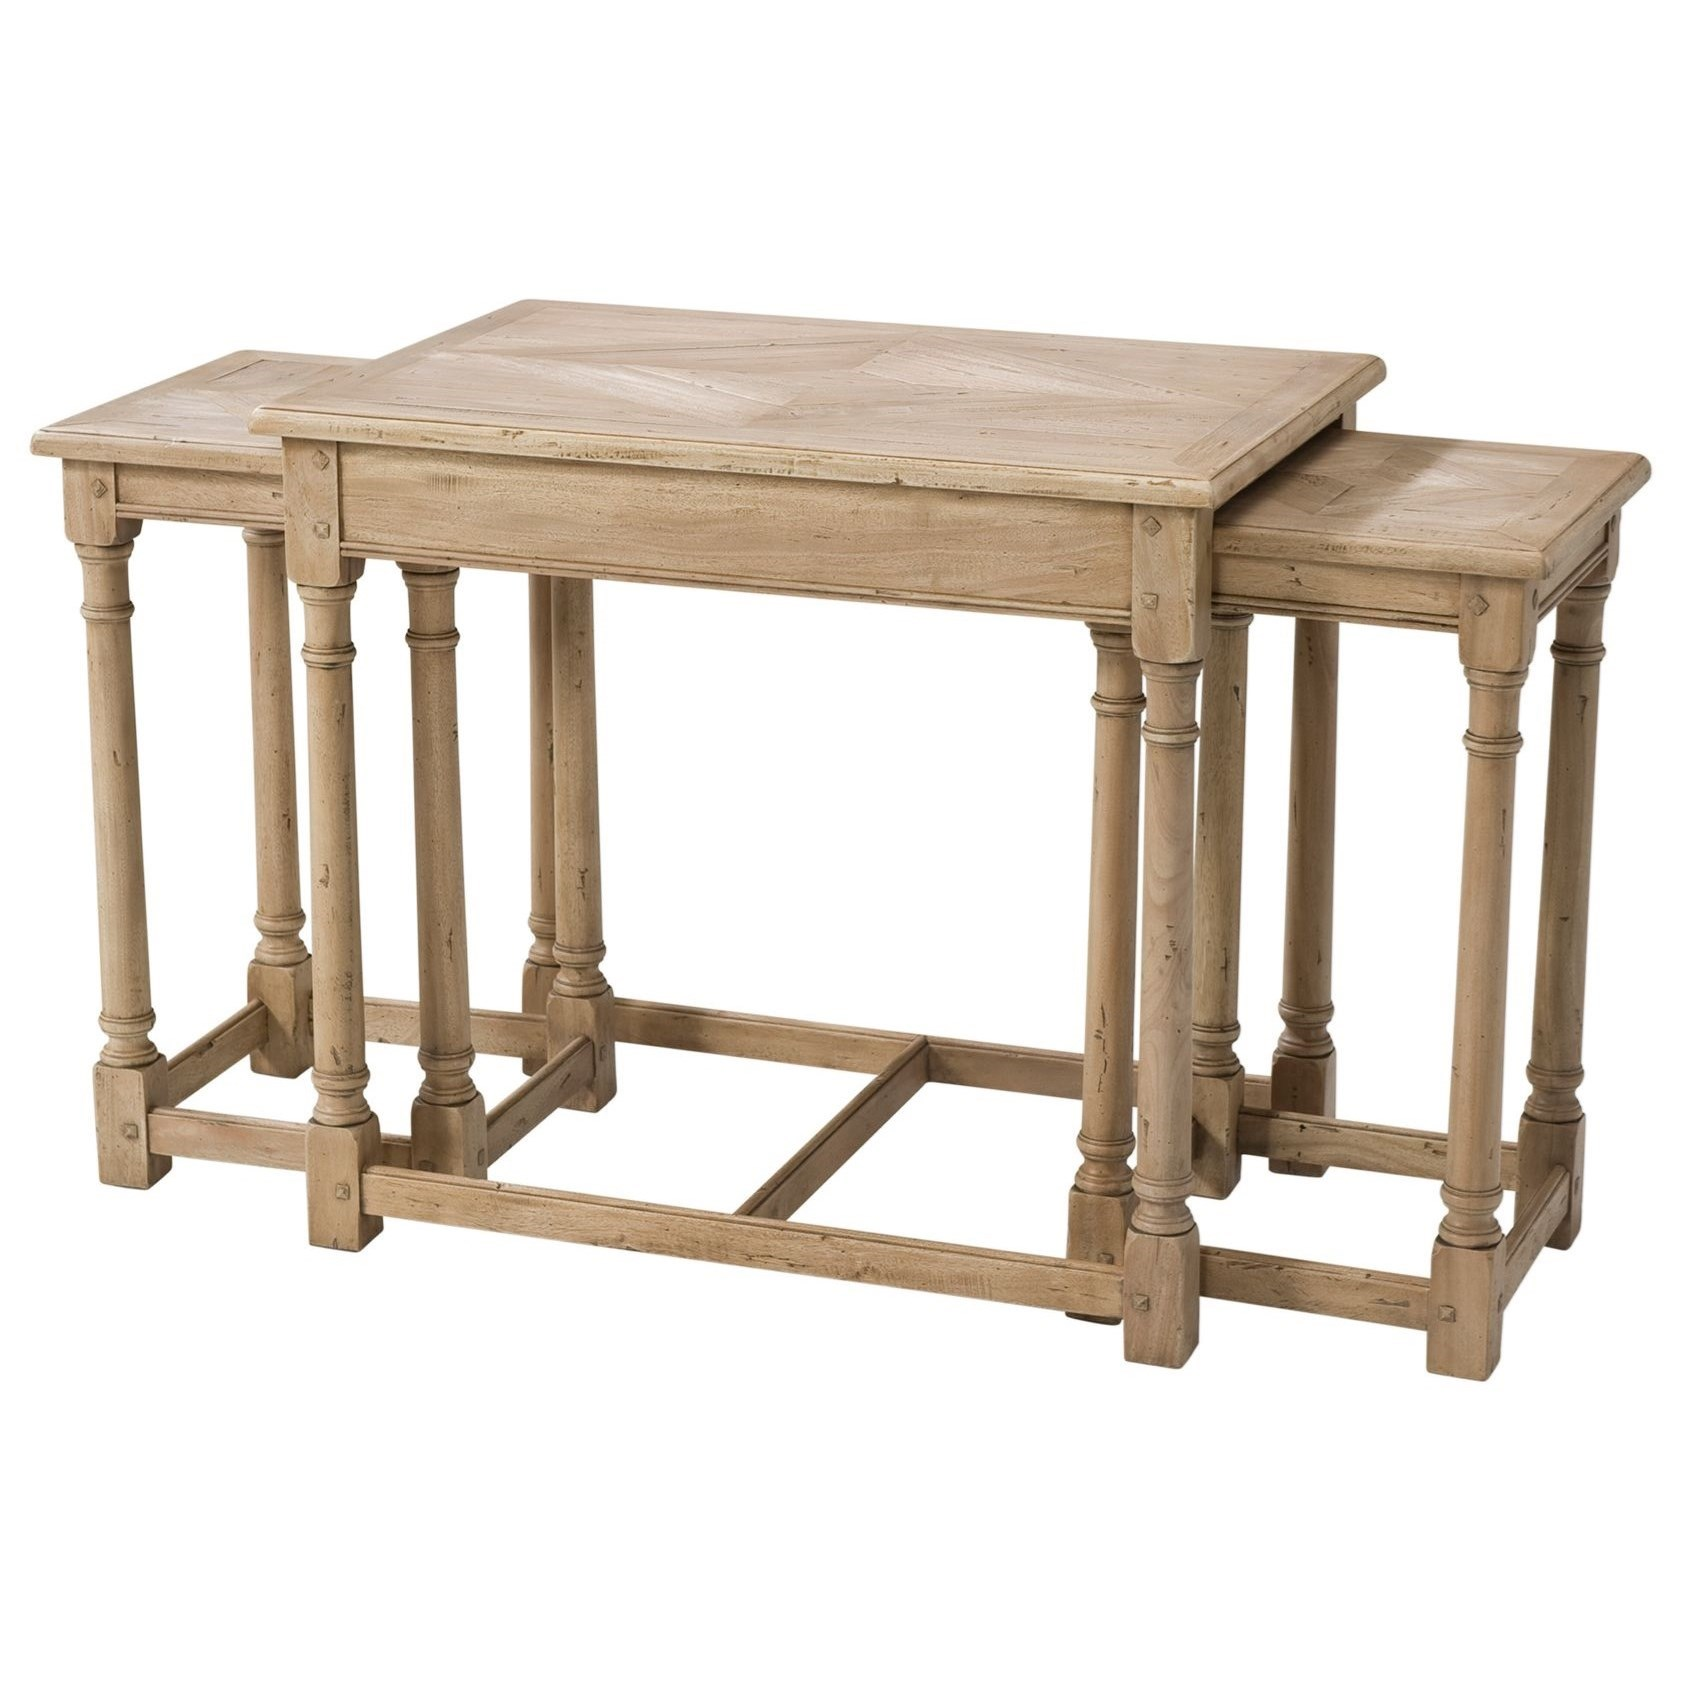 Orchard Nest of Tables